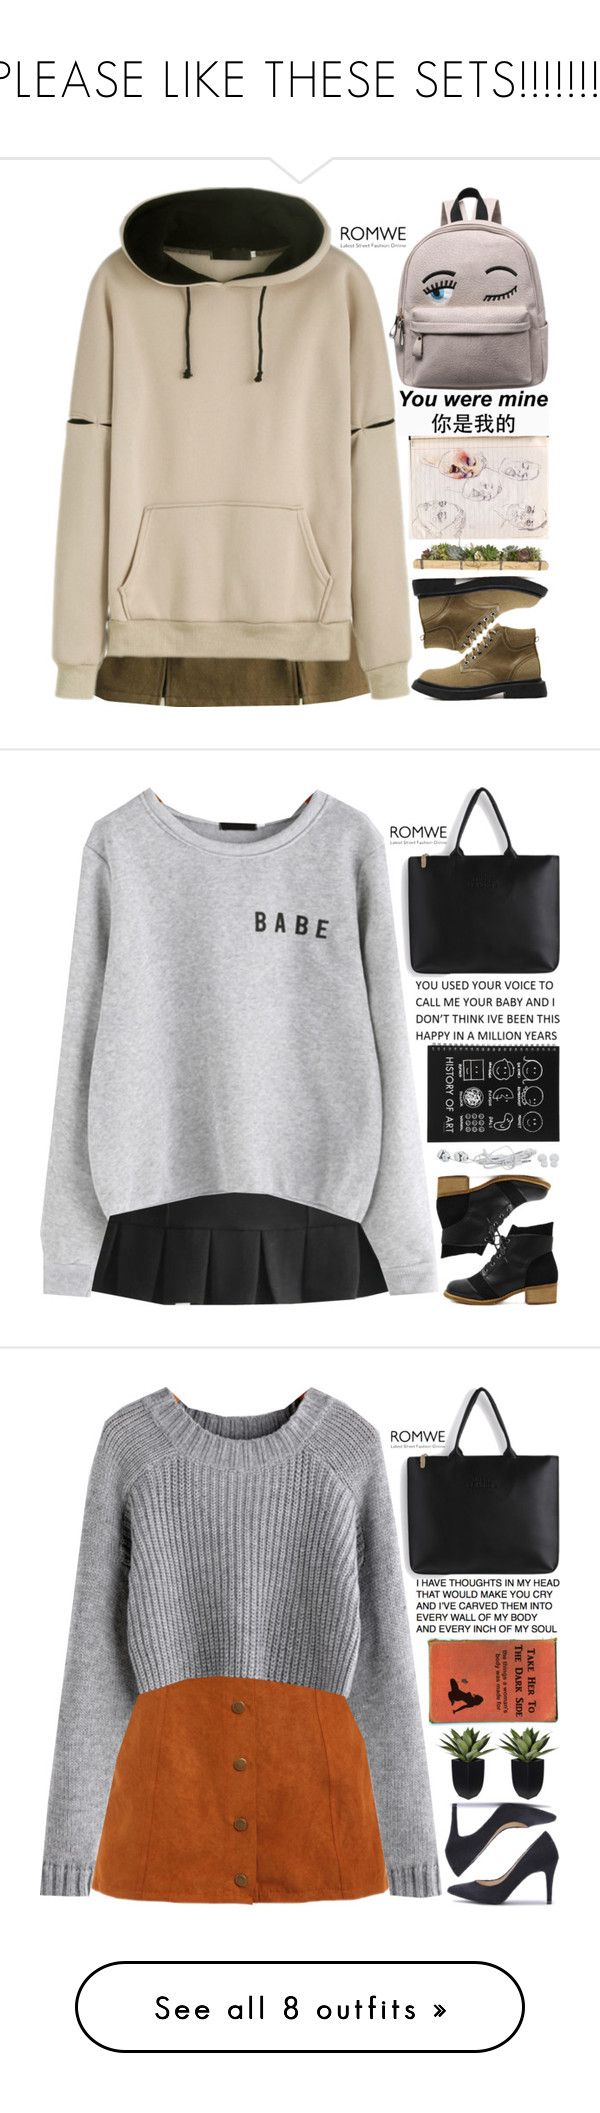 """""""PLEASE LIKE THESE SETS!!!!!!!!"""" by scarlett-morwenna ❤ liked on Polyvore featuring Jayson Home, vintage, Authentics, ssongbyssong, Emini House, Muji, Primera, ANS, ASOS and Etude House"""